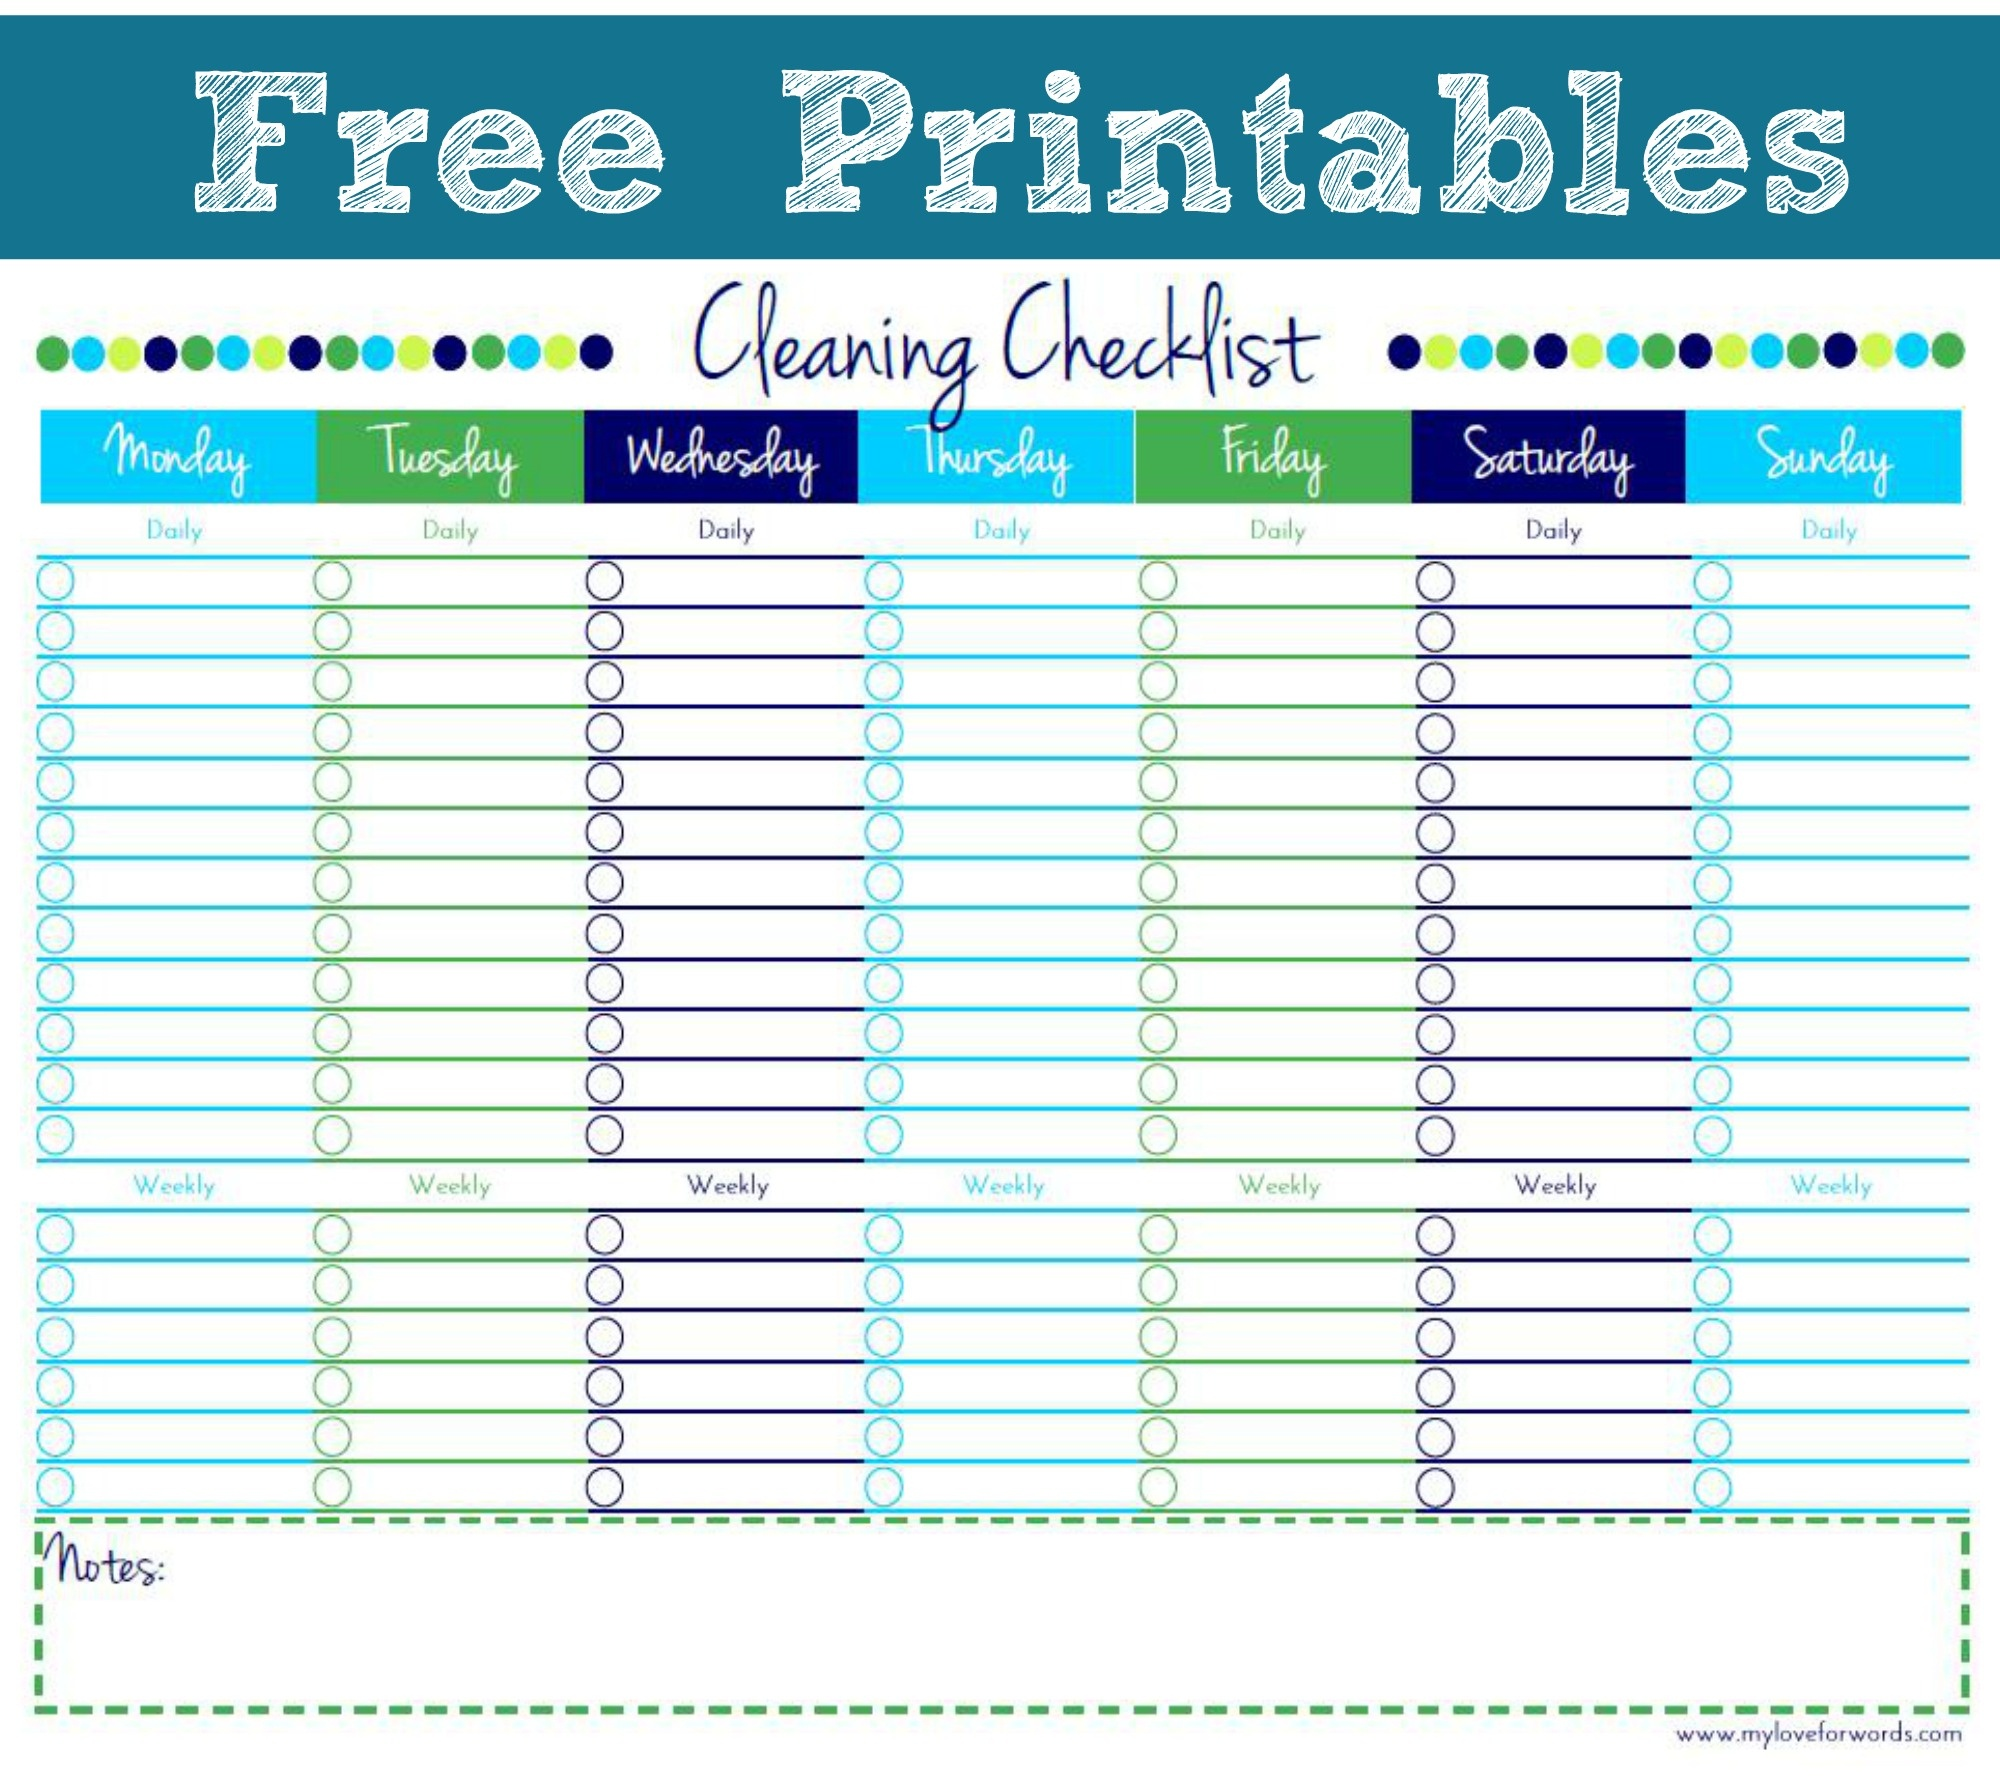 Cleaning Checklist {Free Printable} - Free Printable Cleaning Schedule